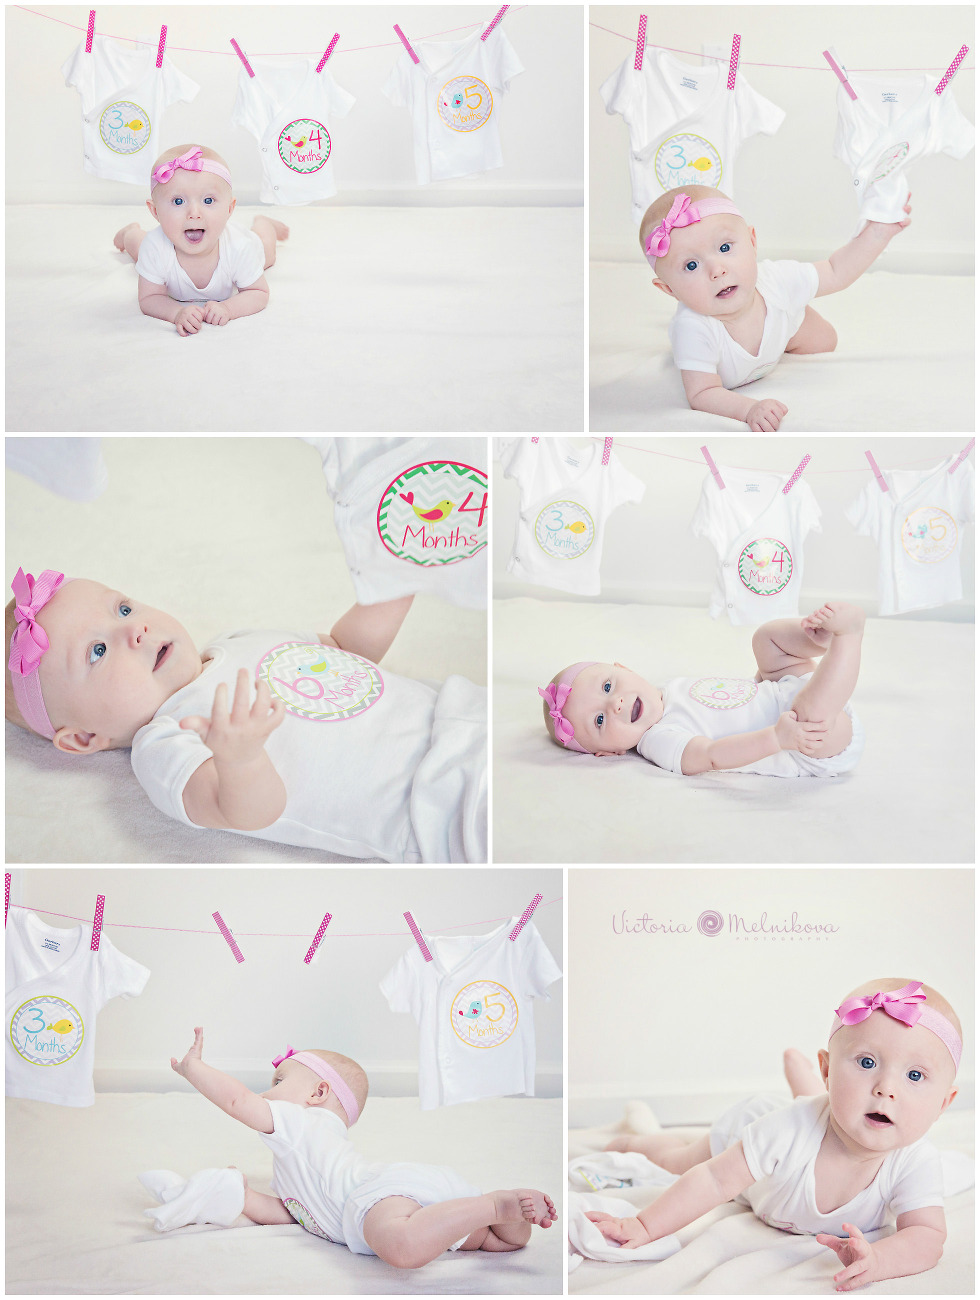 6 month birthday picture ideas ; 6-months_212(pp_w980_h1300)